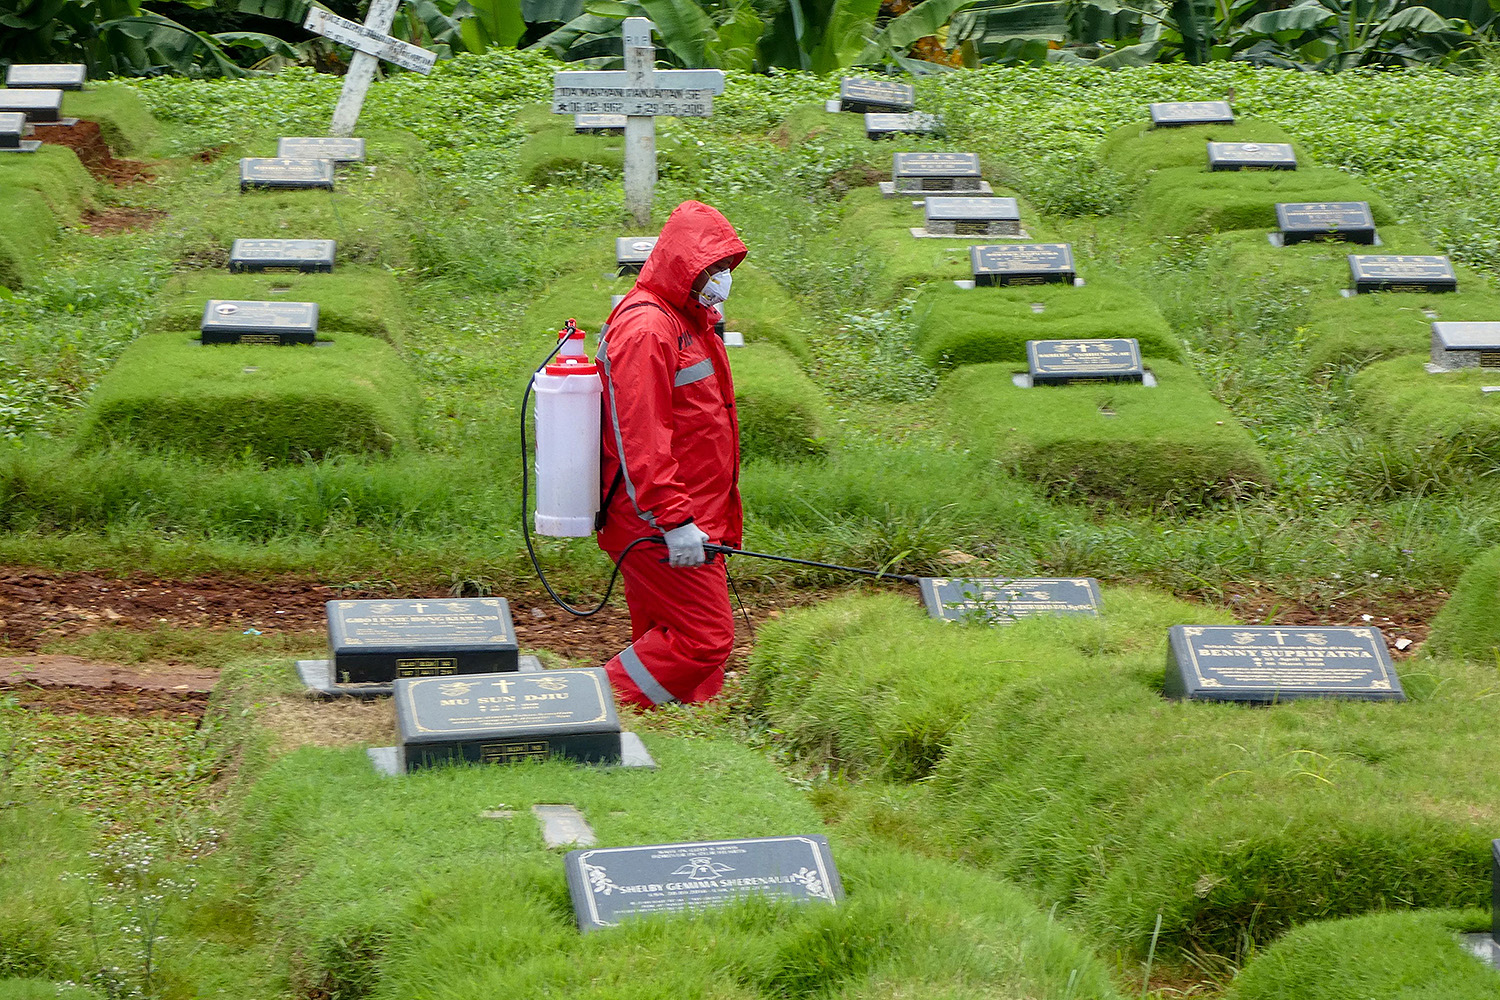 A worker sprays disinfectant at a graveyard during the funeral of a coronavirus victim in Jakarta, Indonesia, on March 31. BAY ISMOYO/AFP via Getty Images